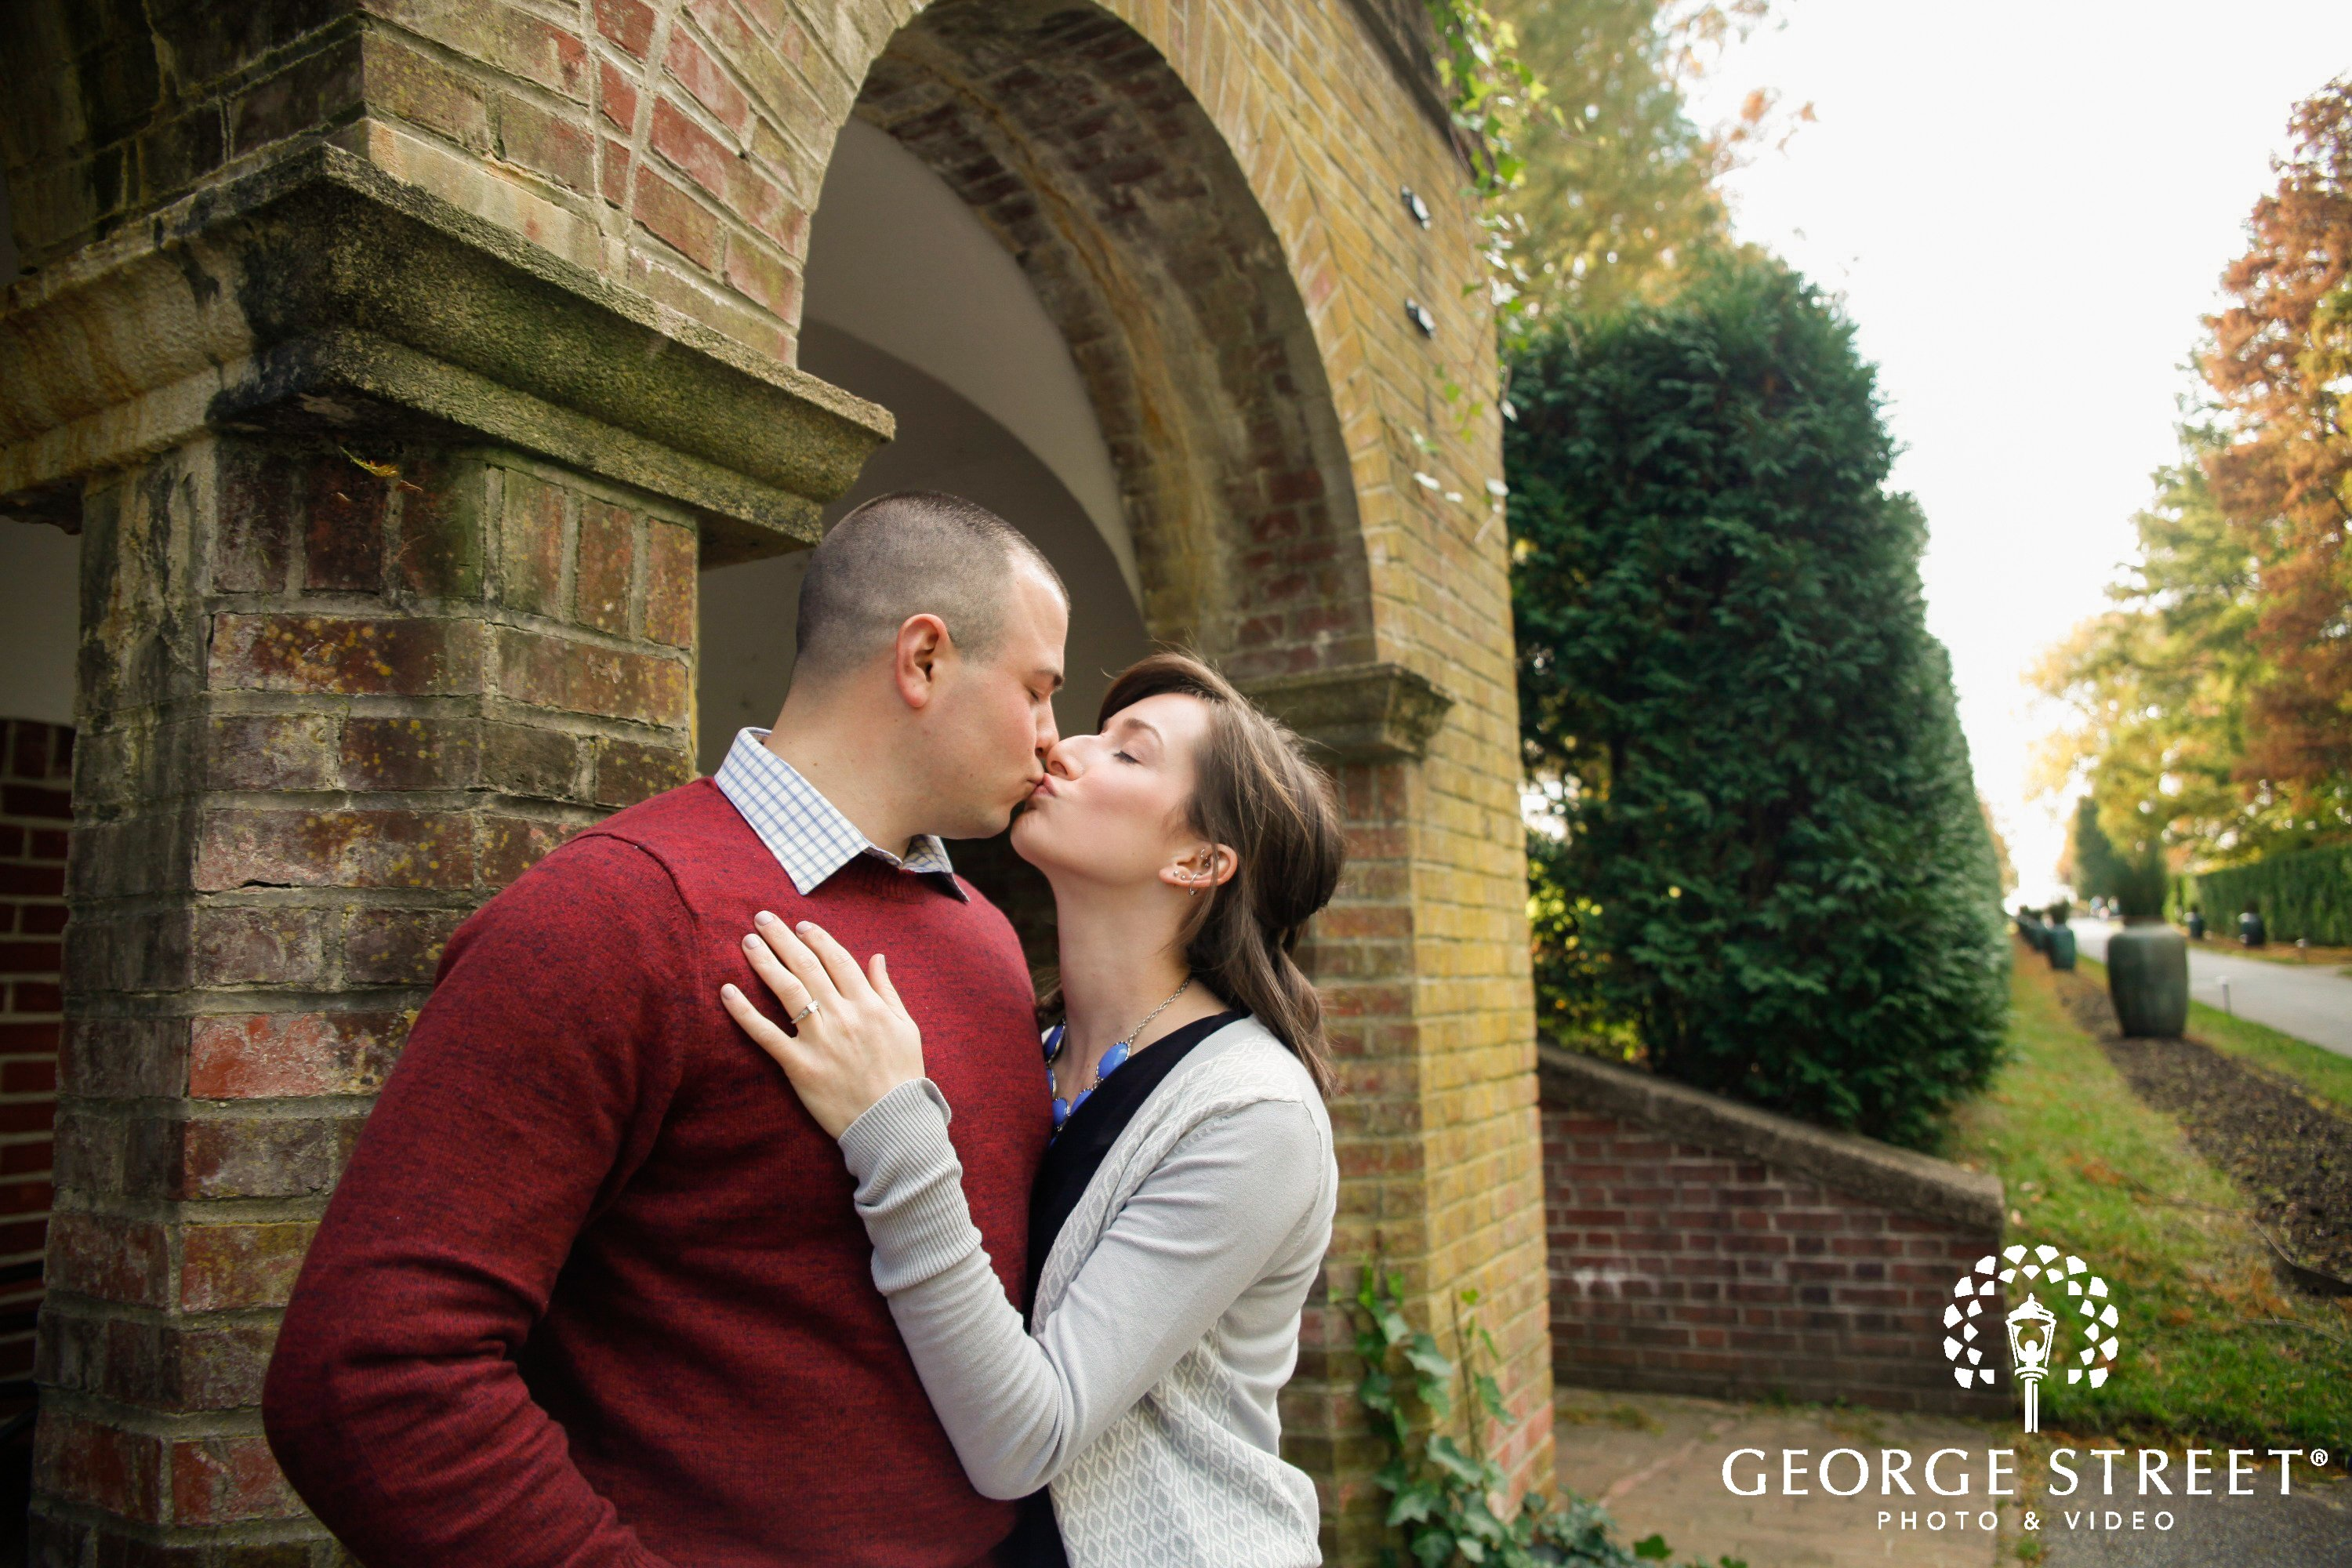 couple kissing in front of brick building